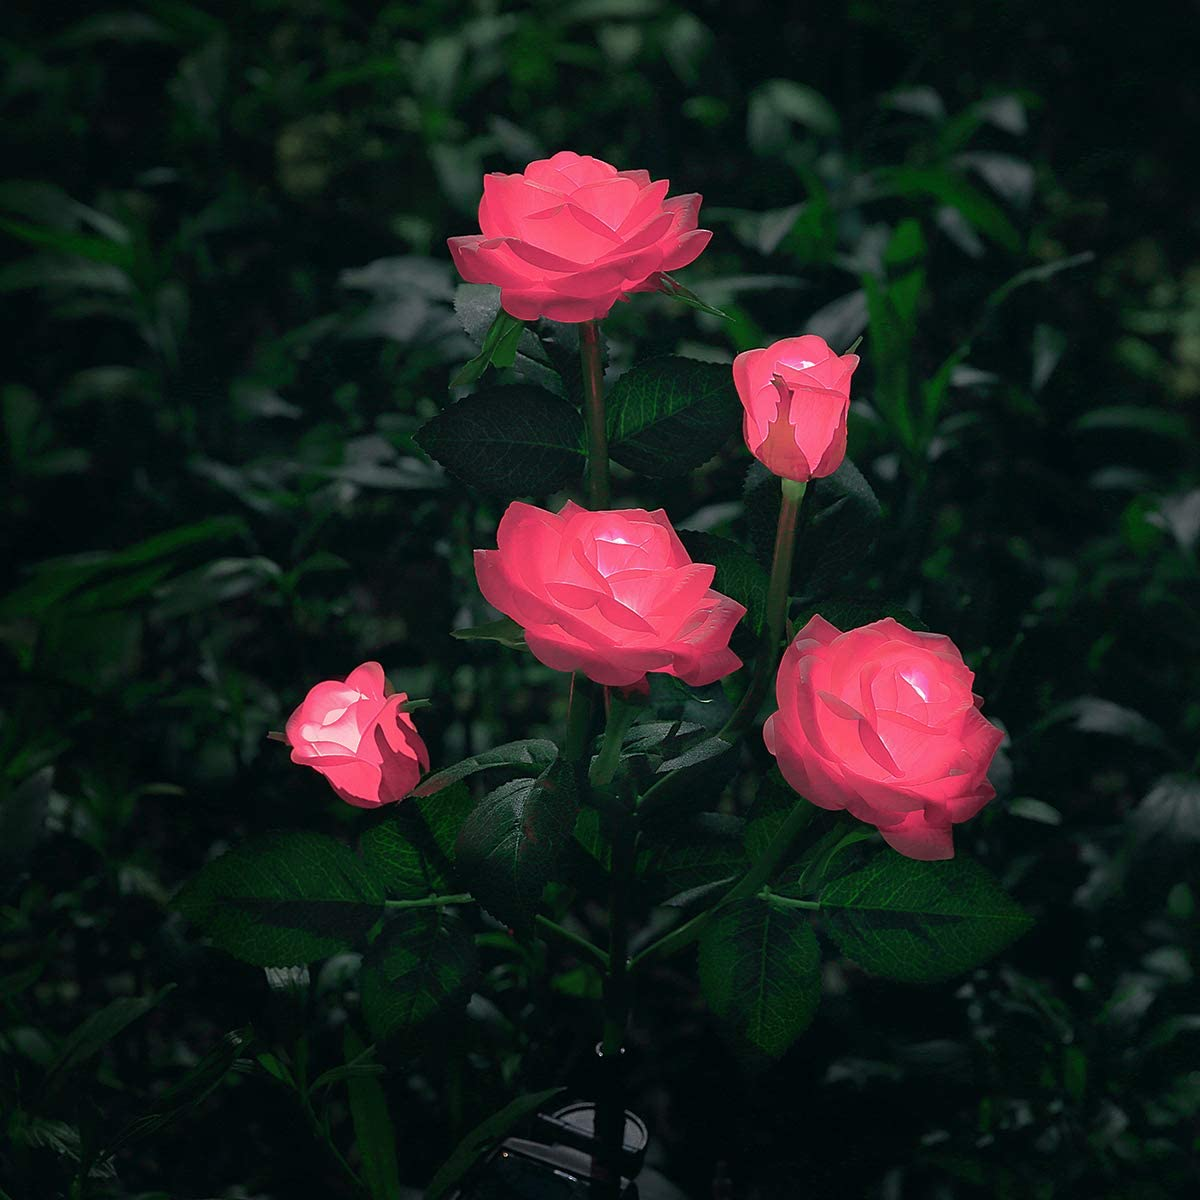 New Material Outdoor Realistic Solar Powered Rose Lights Flower Stake, for Garden Patio Yard Pathway Decoration, Pink